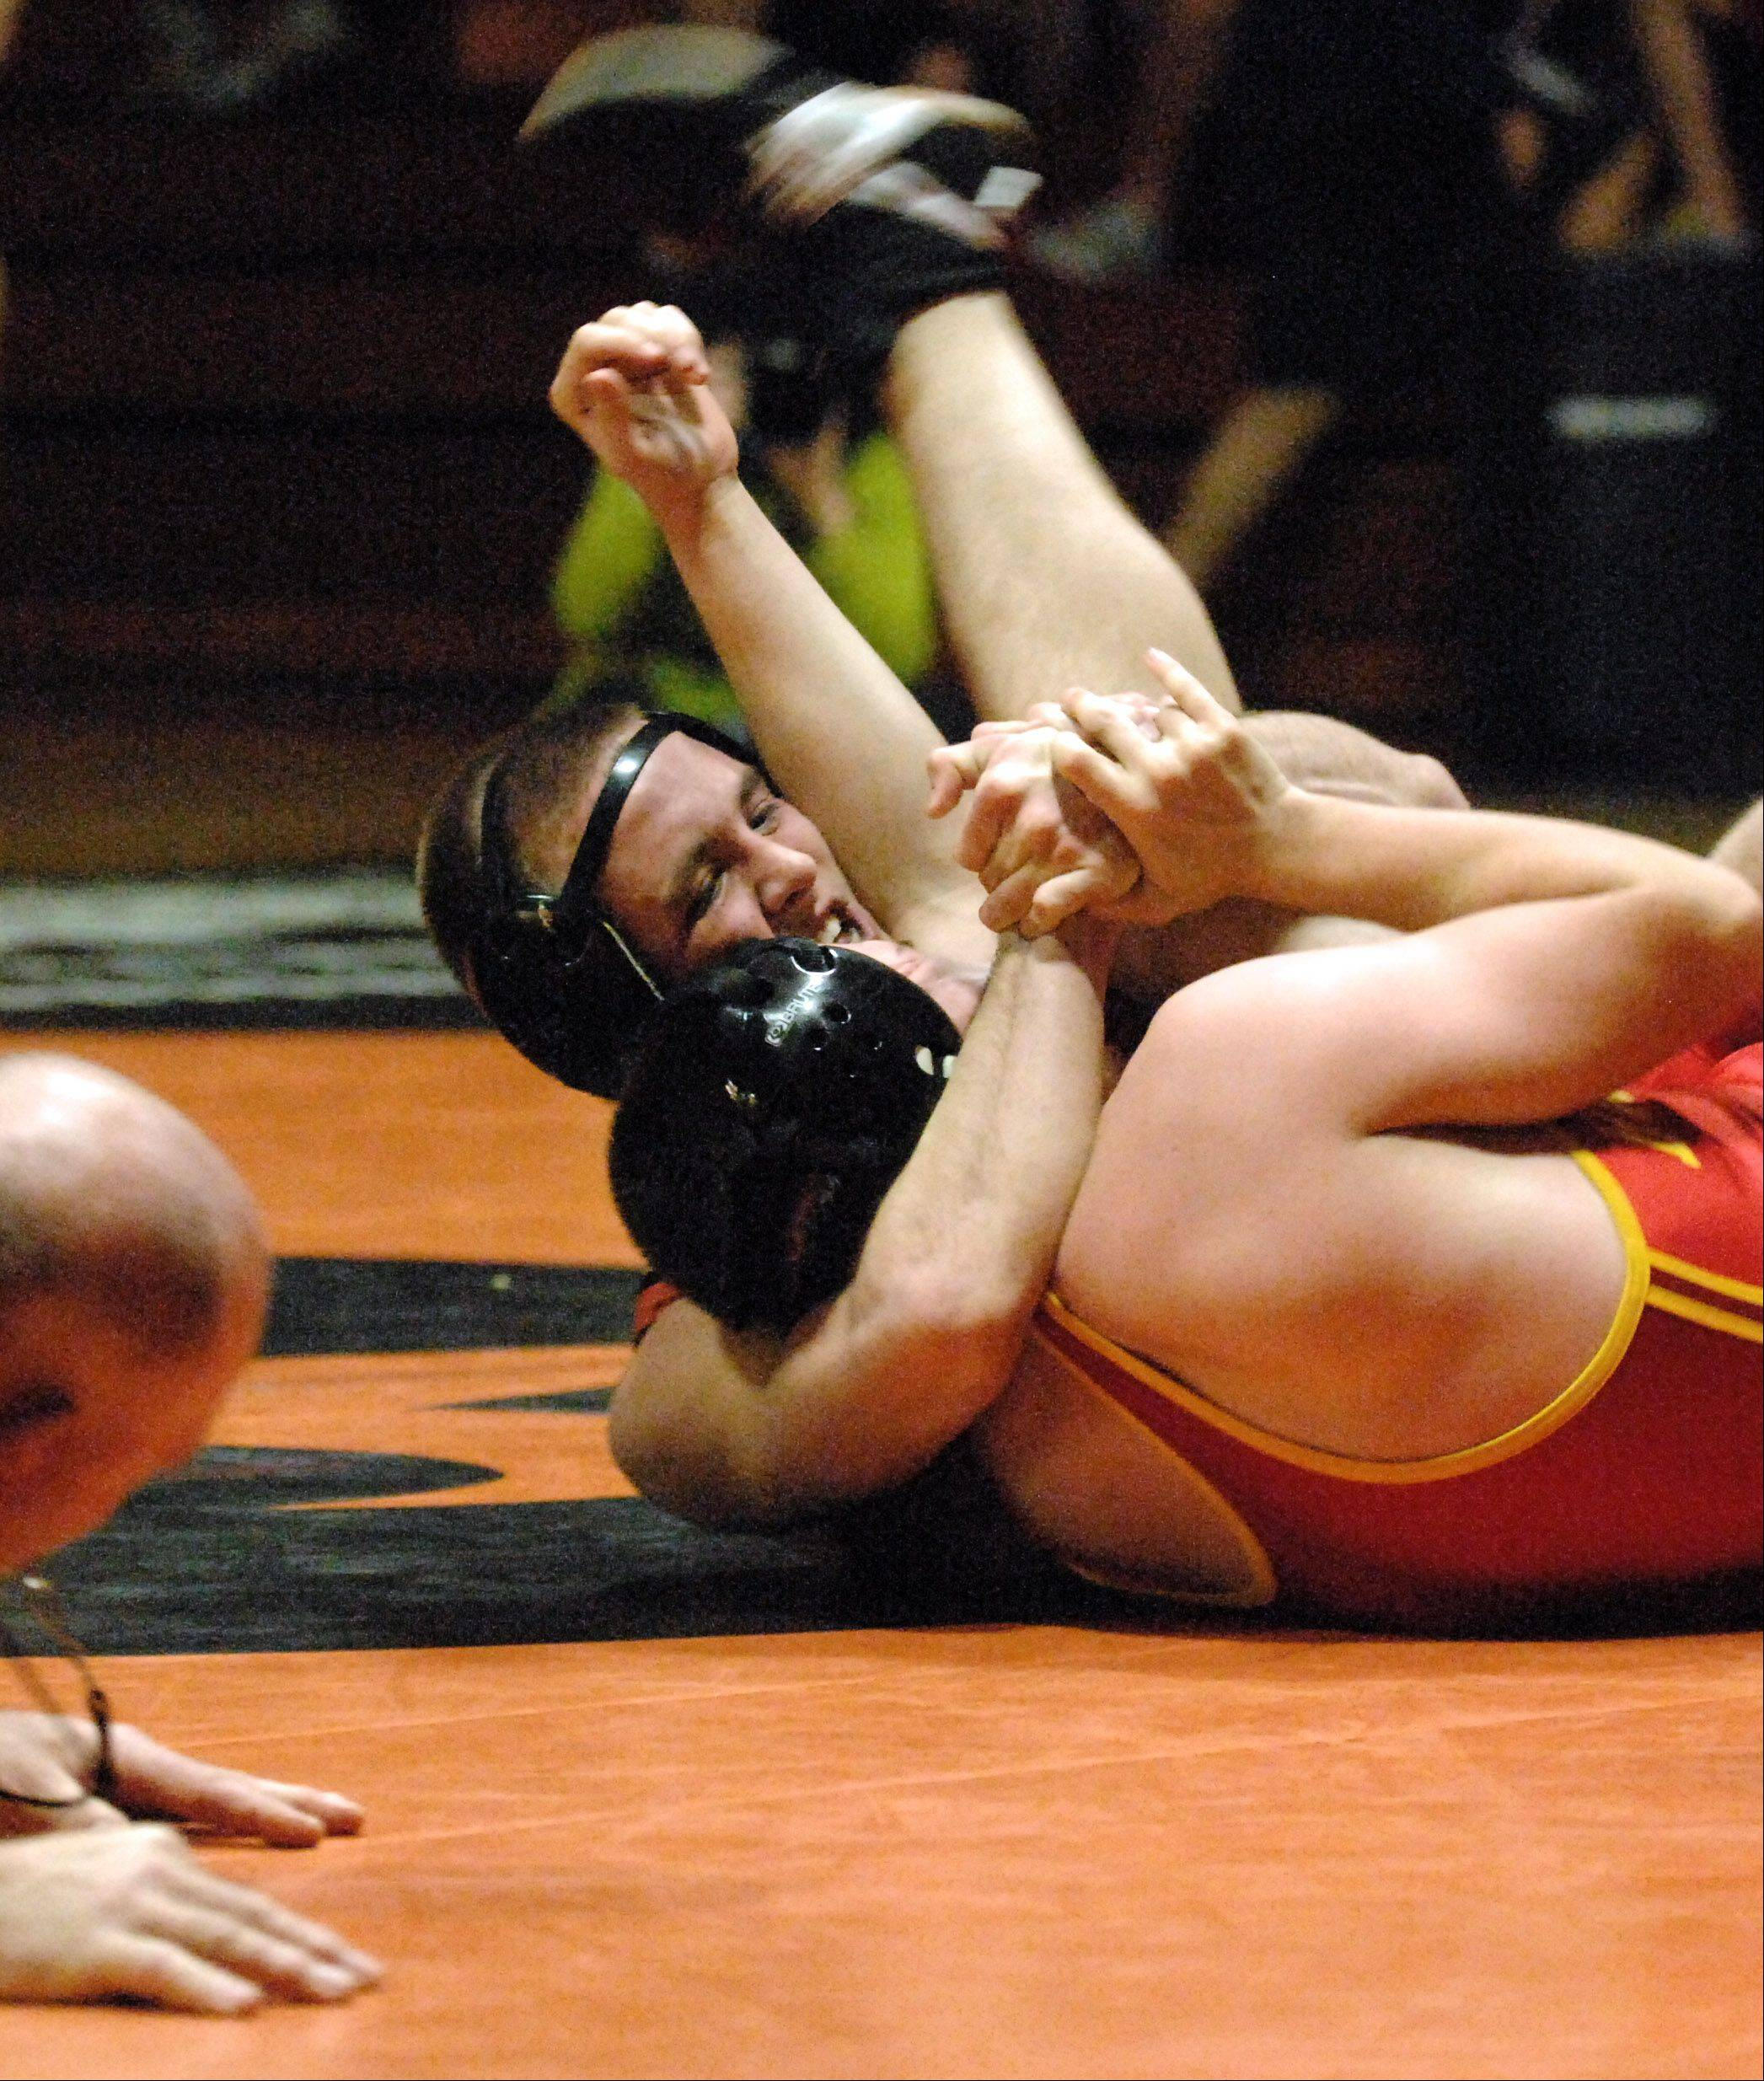 St. Charles East's Cam Carlso defeats Batavia's Nick Offutt at 170-pounds during Thursday's wrestling action at St. Charles East.